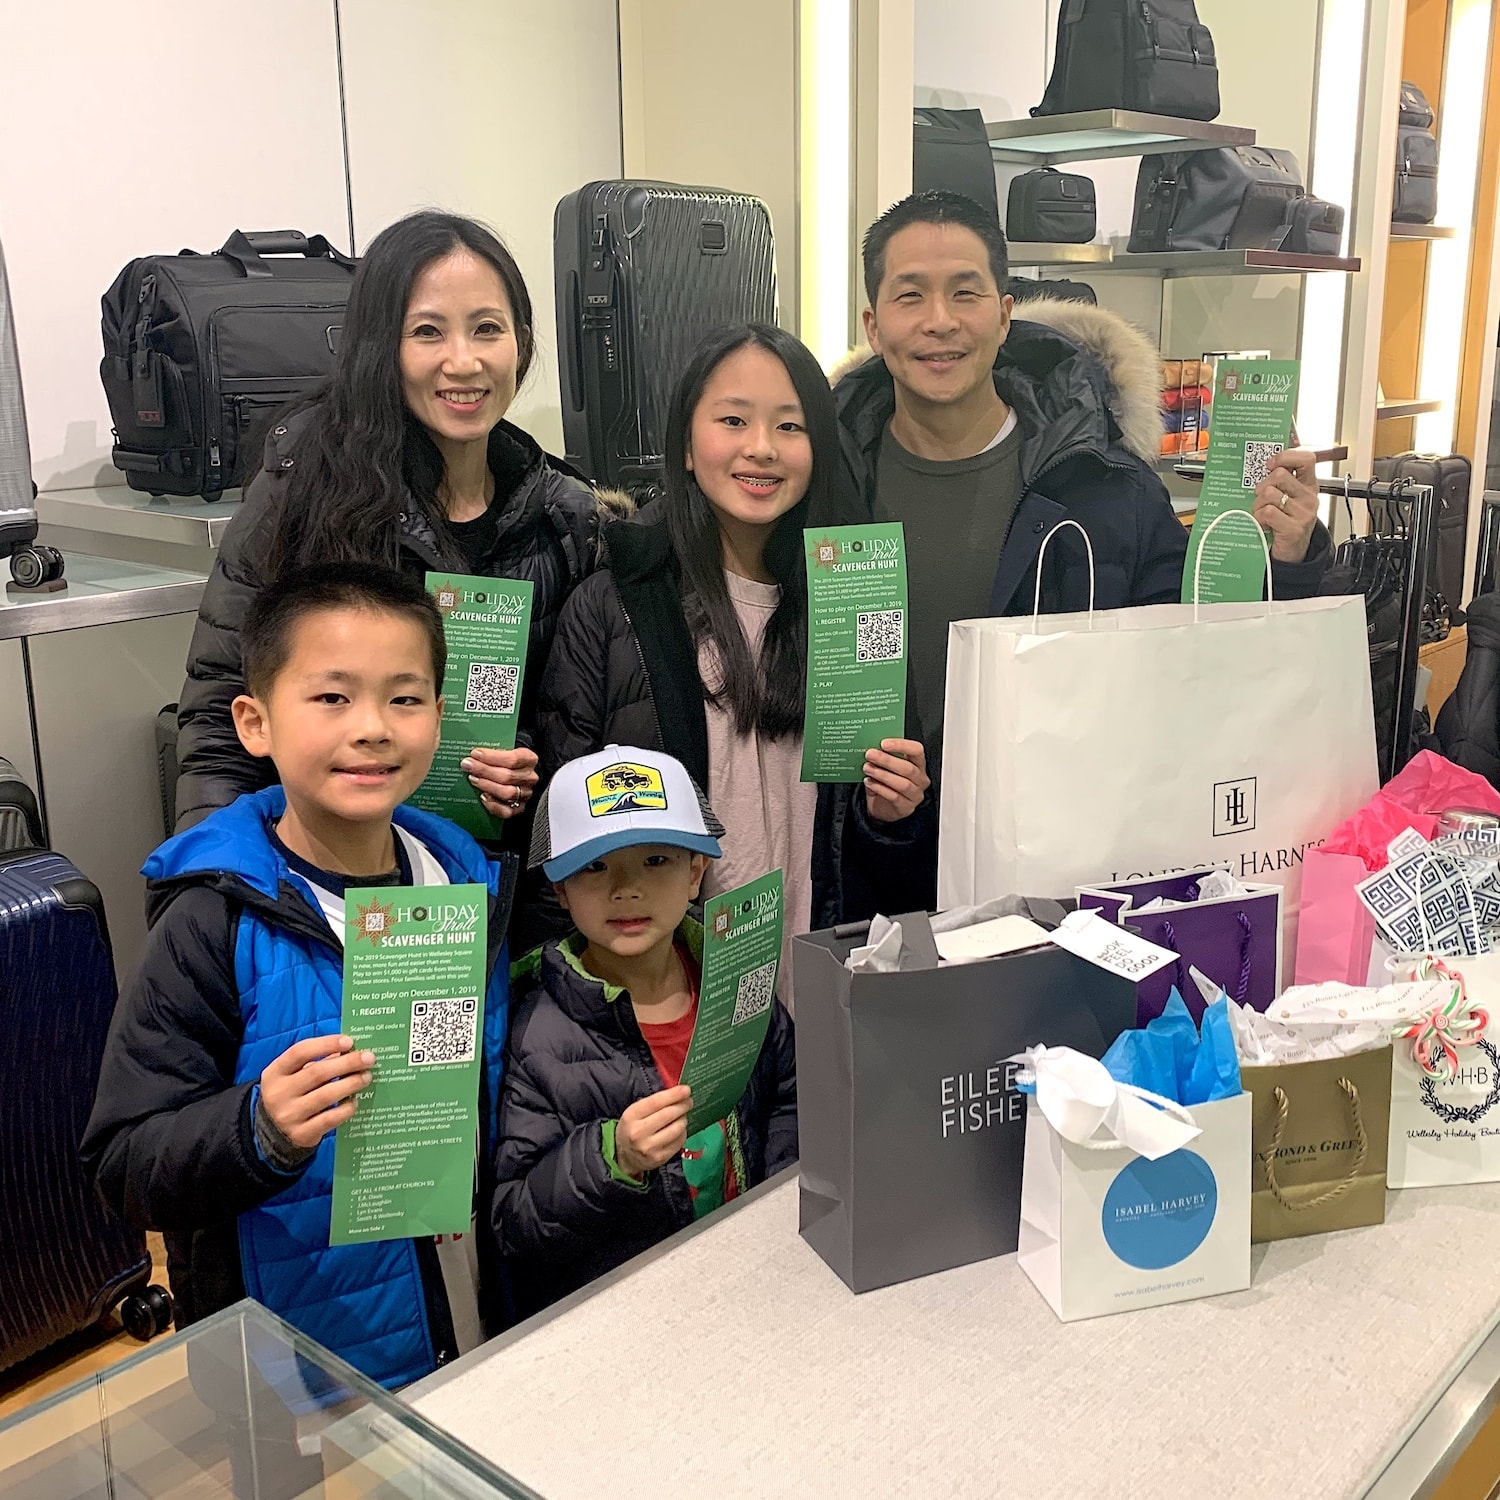 Scavenger Hunt winners from the 2019 Holiday Stroll in Wellesley Square